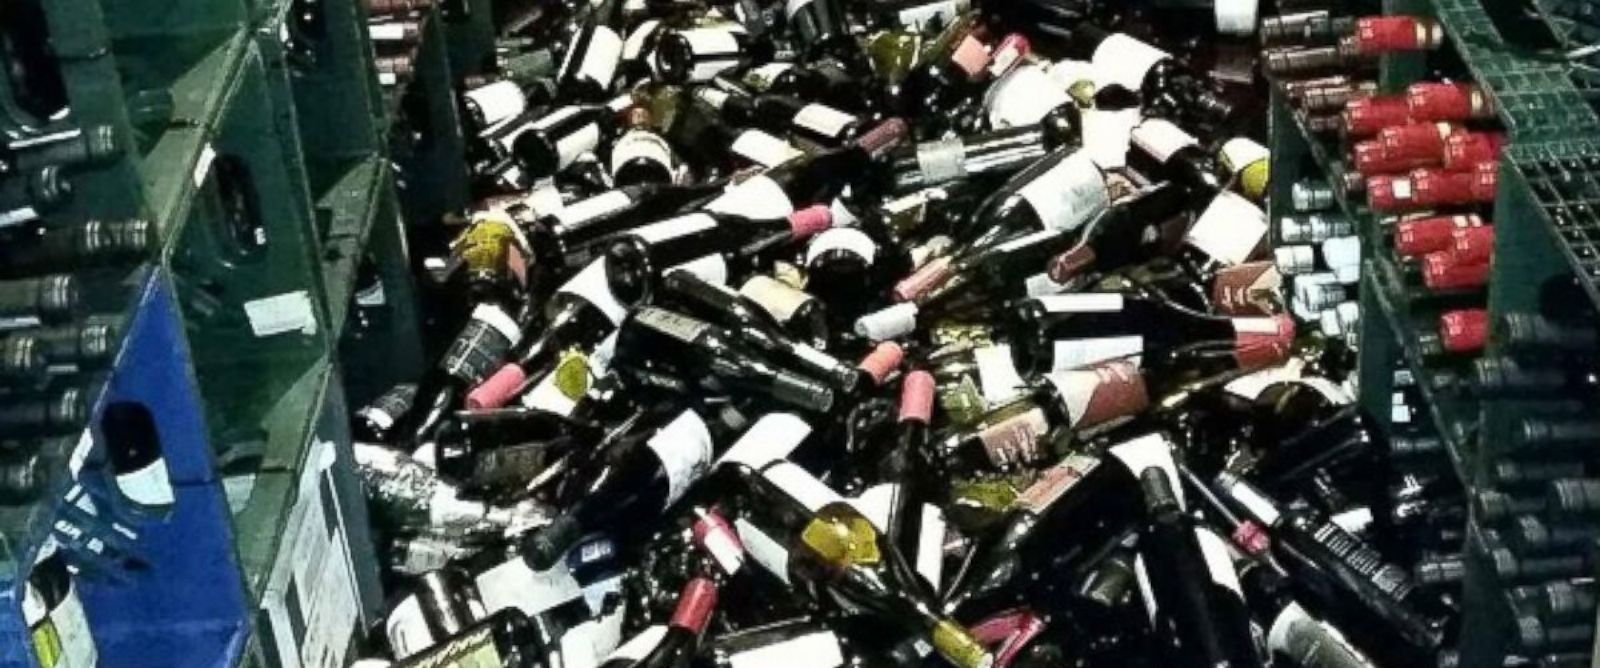 """PHOTO: Cole Drake Events posted this photo to Instagram with the caption """"This is what an earthquake does in napa wine country"""" on Aug. 24, 2014."""